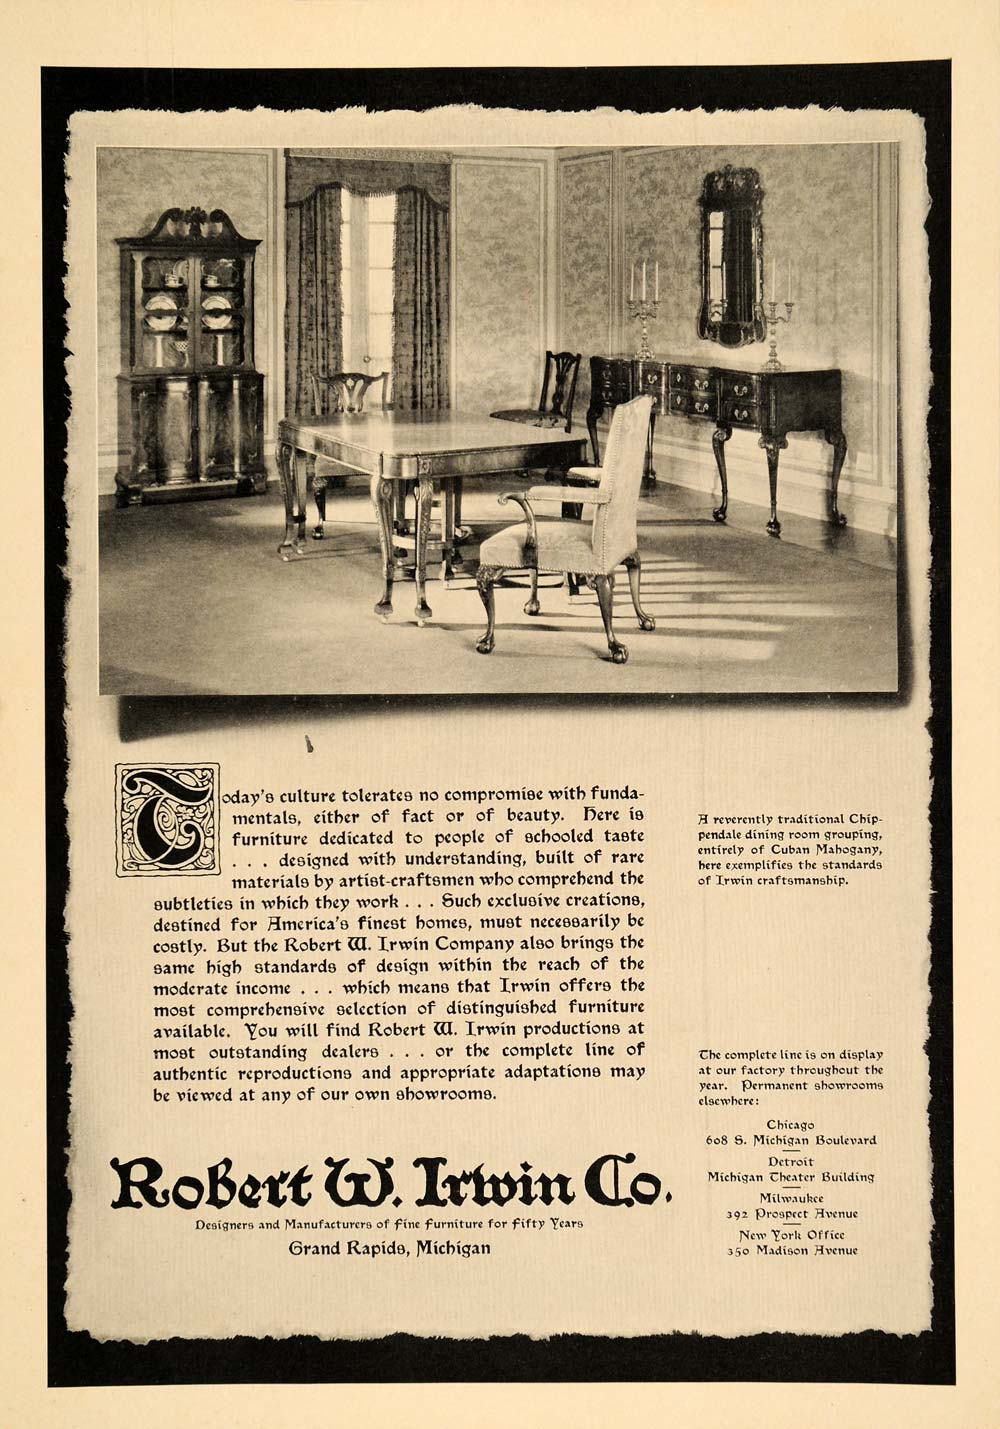 Robert W_ Irwin Furniture Company http://www.ebay.com/itm/1930-Ad-Robert-W-Irwin-Furniture-Dining-Room-Mahogany-ORIGINAL-ADVERTISING-/370765004956